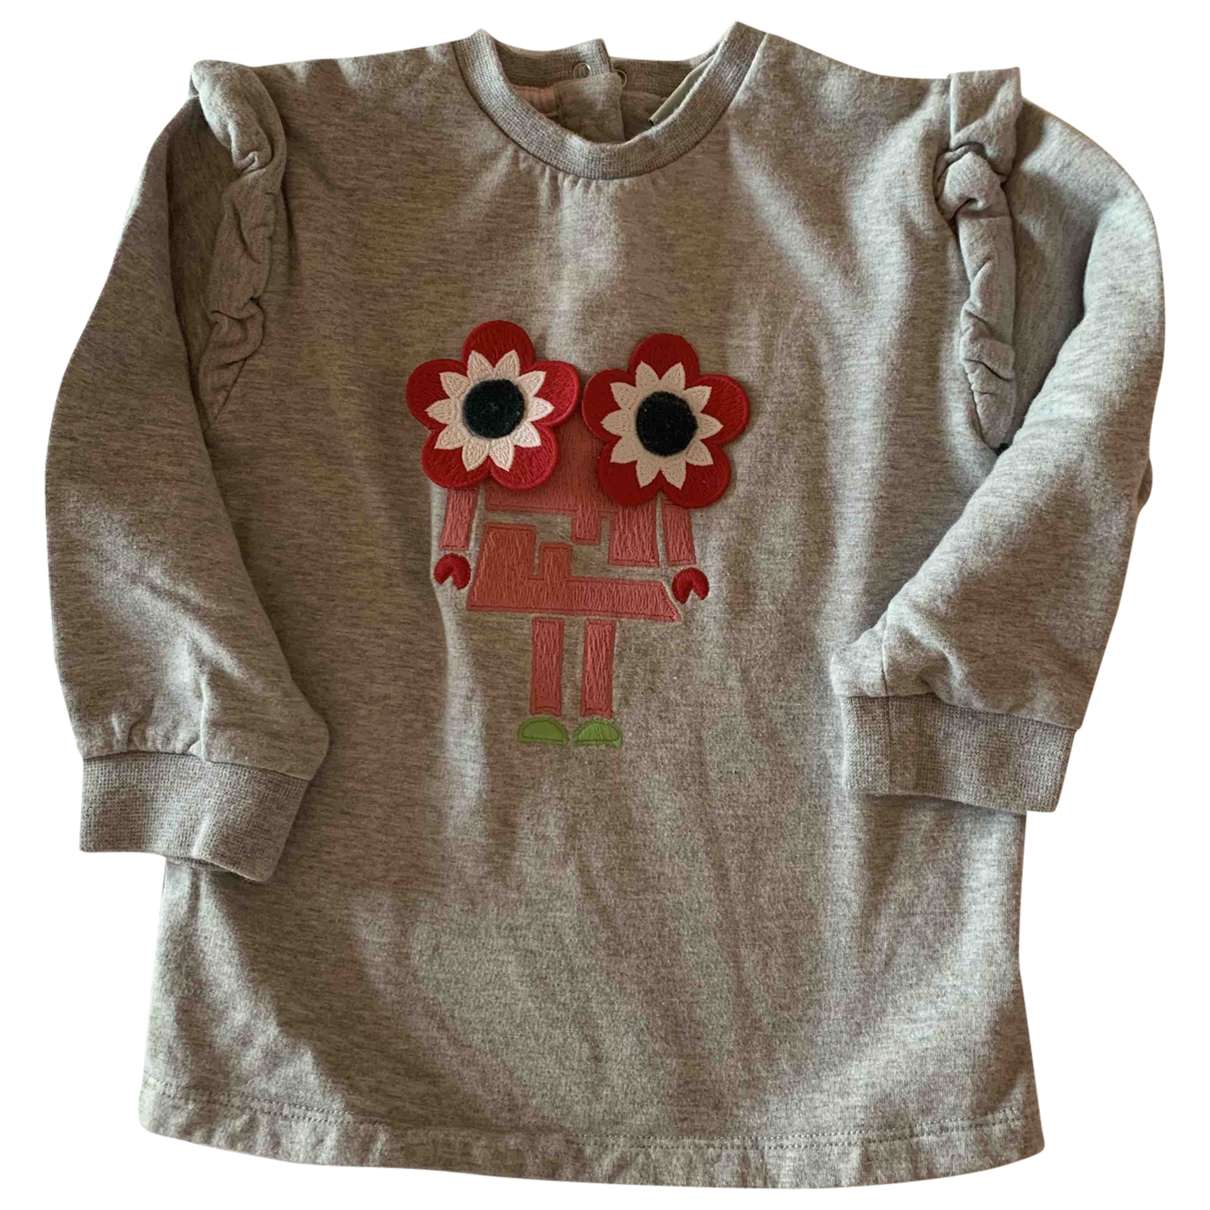 Fendi \N Grey Cotton Knitwear for Kids 2 years - up to 86cm FR